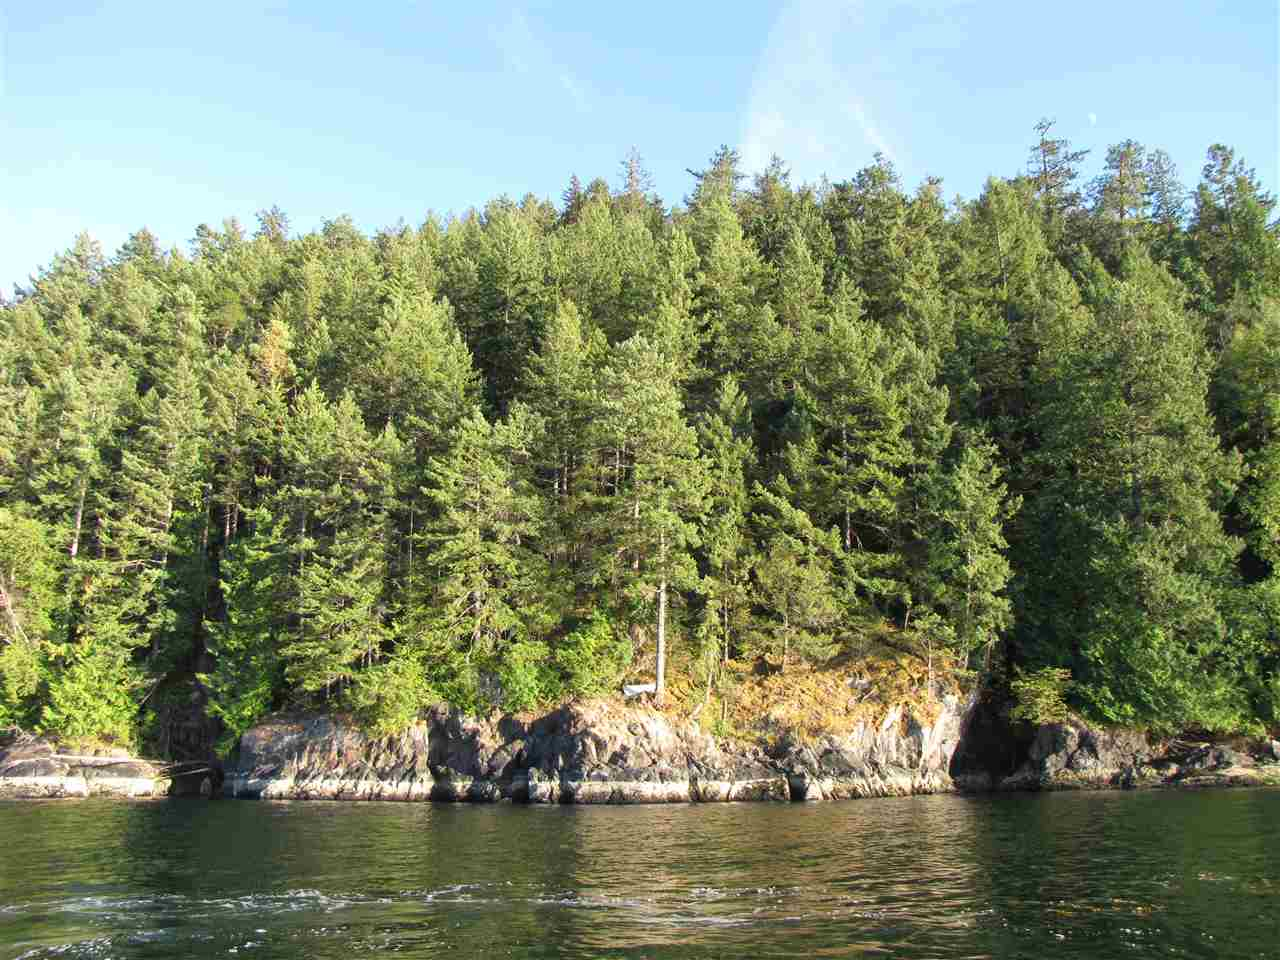 614 SMUGGLER'S COVE ROAD, Bowen Island, BC, V0N 1G1 Photo 1